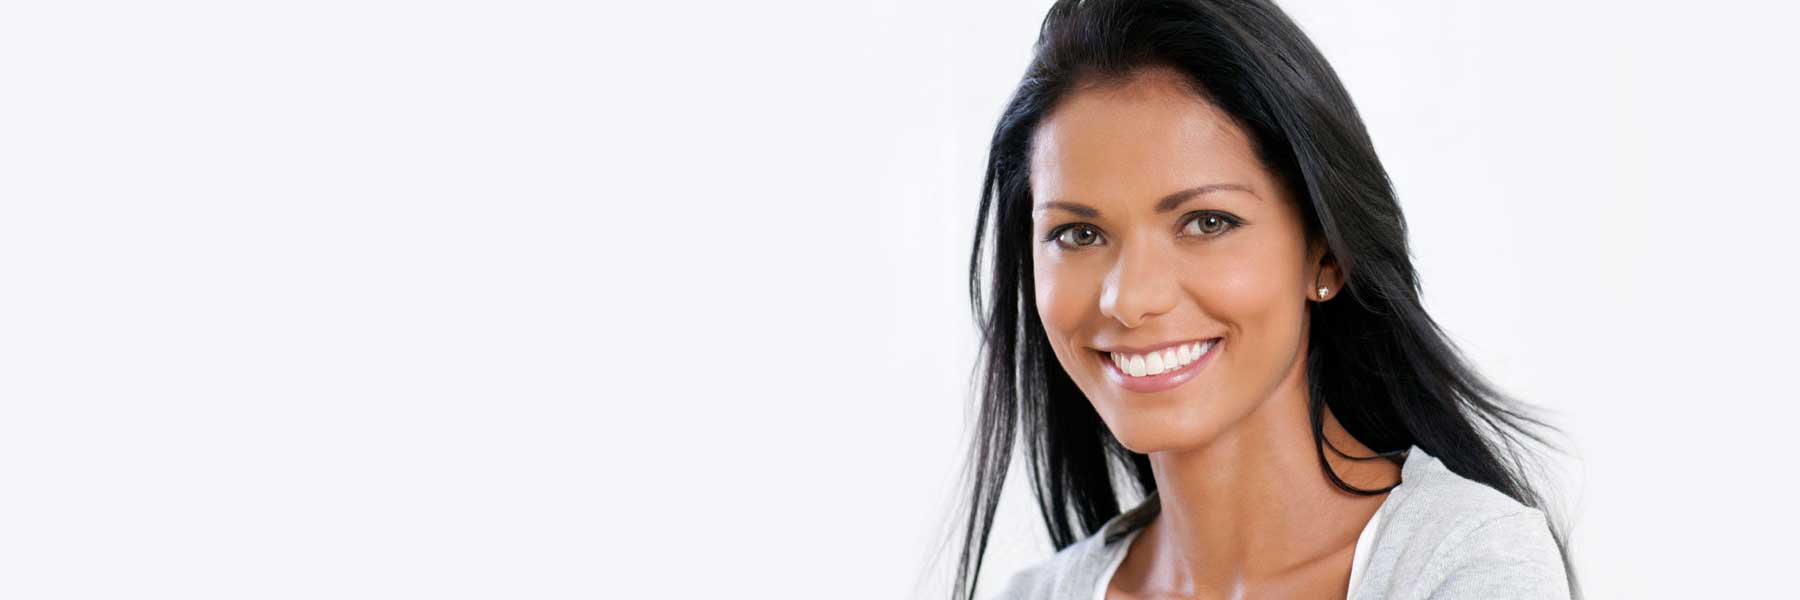 Teeth Whitening Des Moines, IA